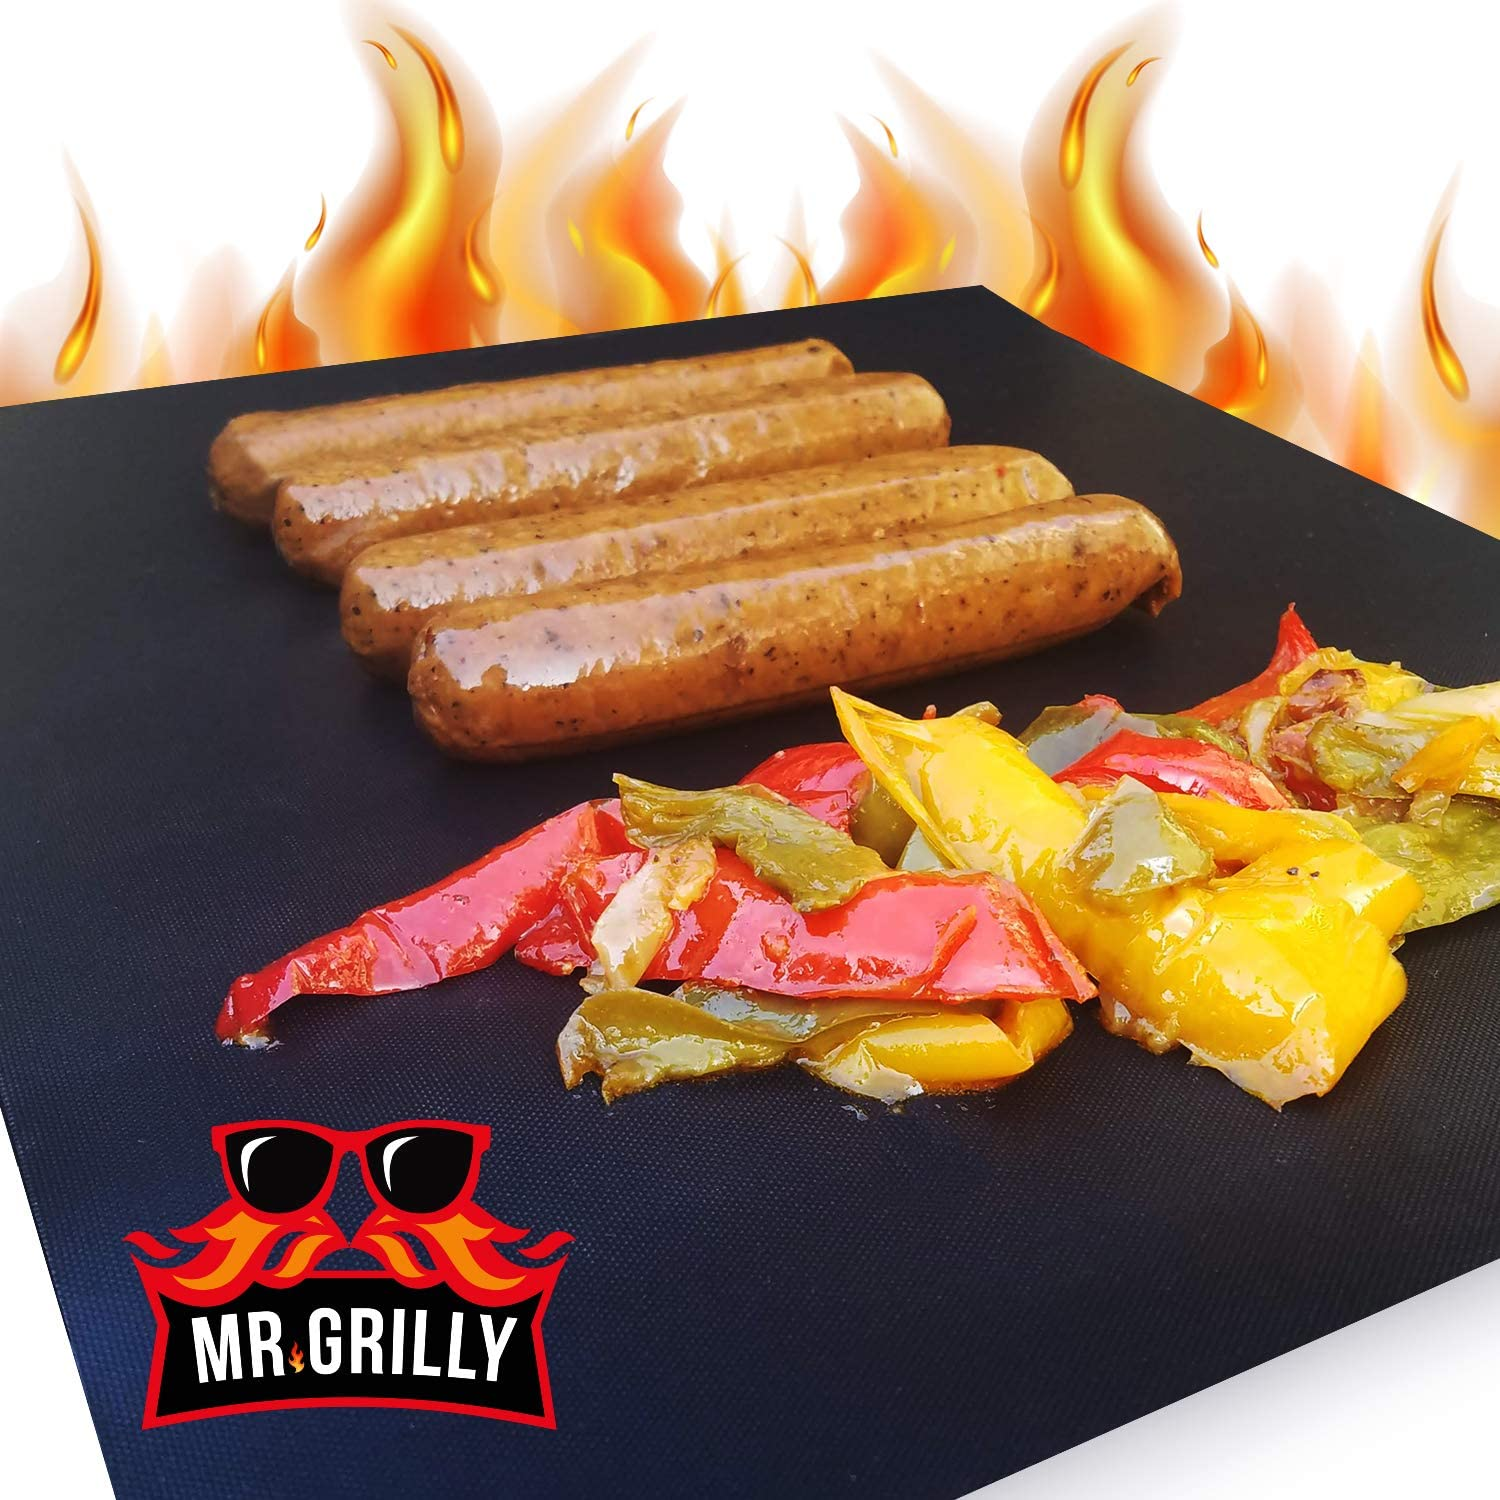 Mr. Grilly BBQ Grill Mat – 2Pcs Set Grill Mats – Fiberglass Cloth Teflon Grilling Mats for Gas Grill – 13 x 15.75 Inch Non Stick Mats – Washable, Durable and Reusable Design – Food-Grade and Safe